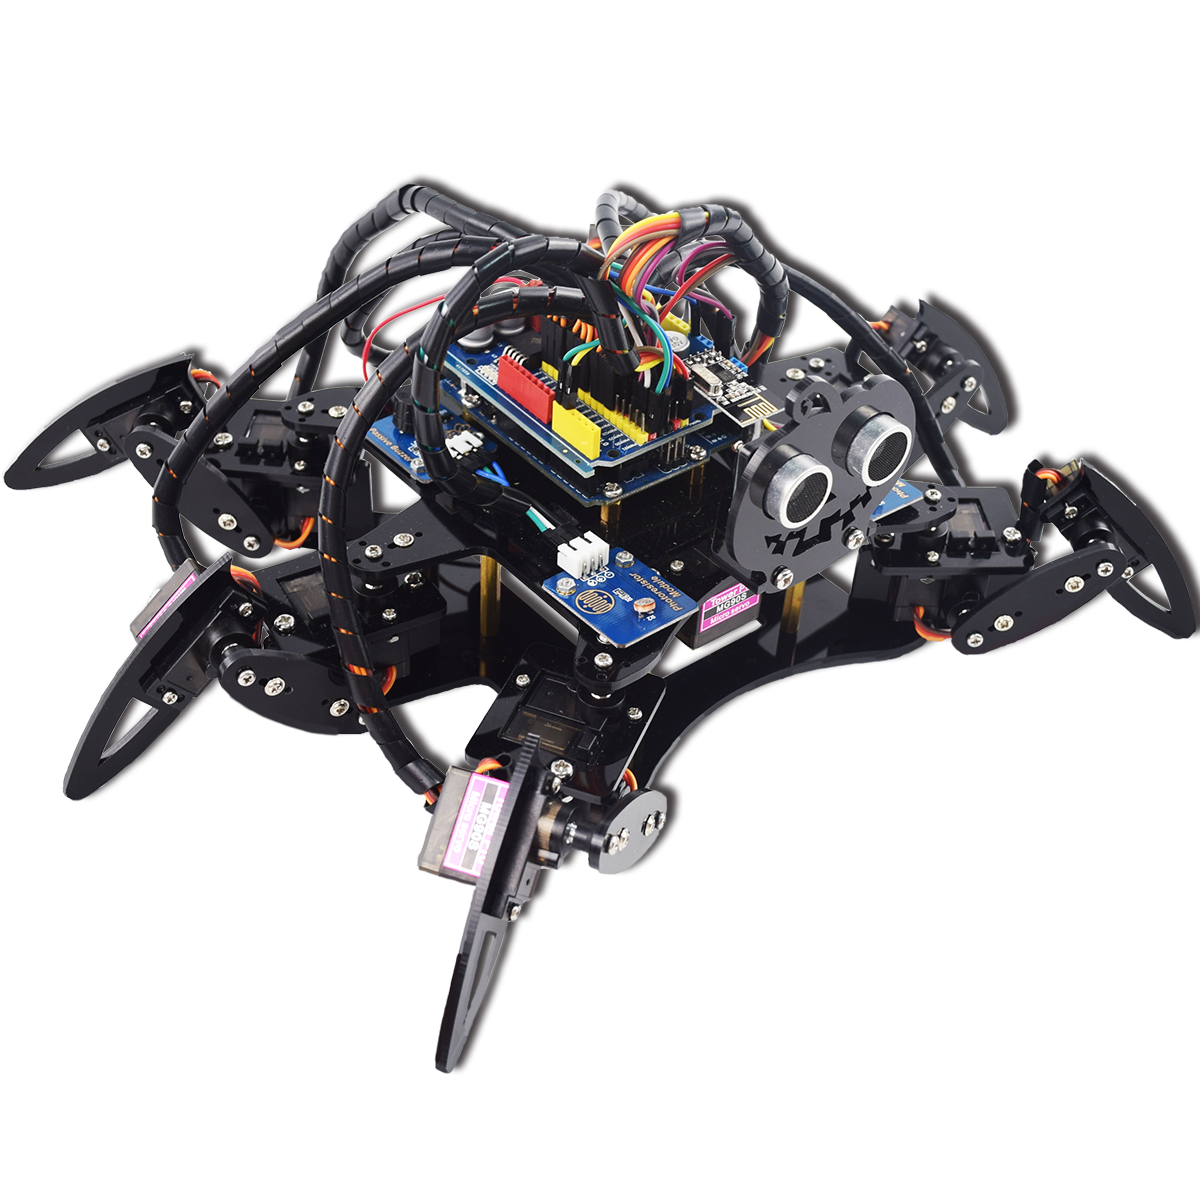 Adeept Hexapod 6 Legs Spider Robot Kit For Arduino Uno R3 And Nano Transformer Diagram Obstacle Avoidance Circuit Developed Based On This Simulates The Movements Of Leg Insects Via Programming In Ide Controlling 19 Servos